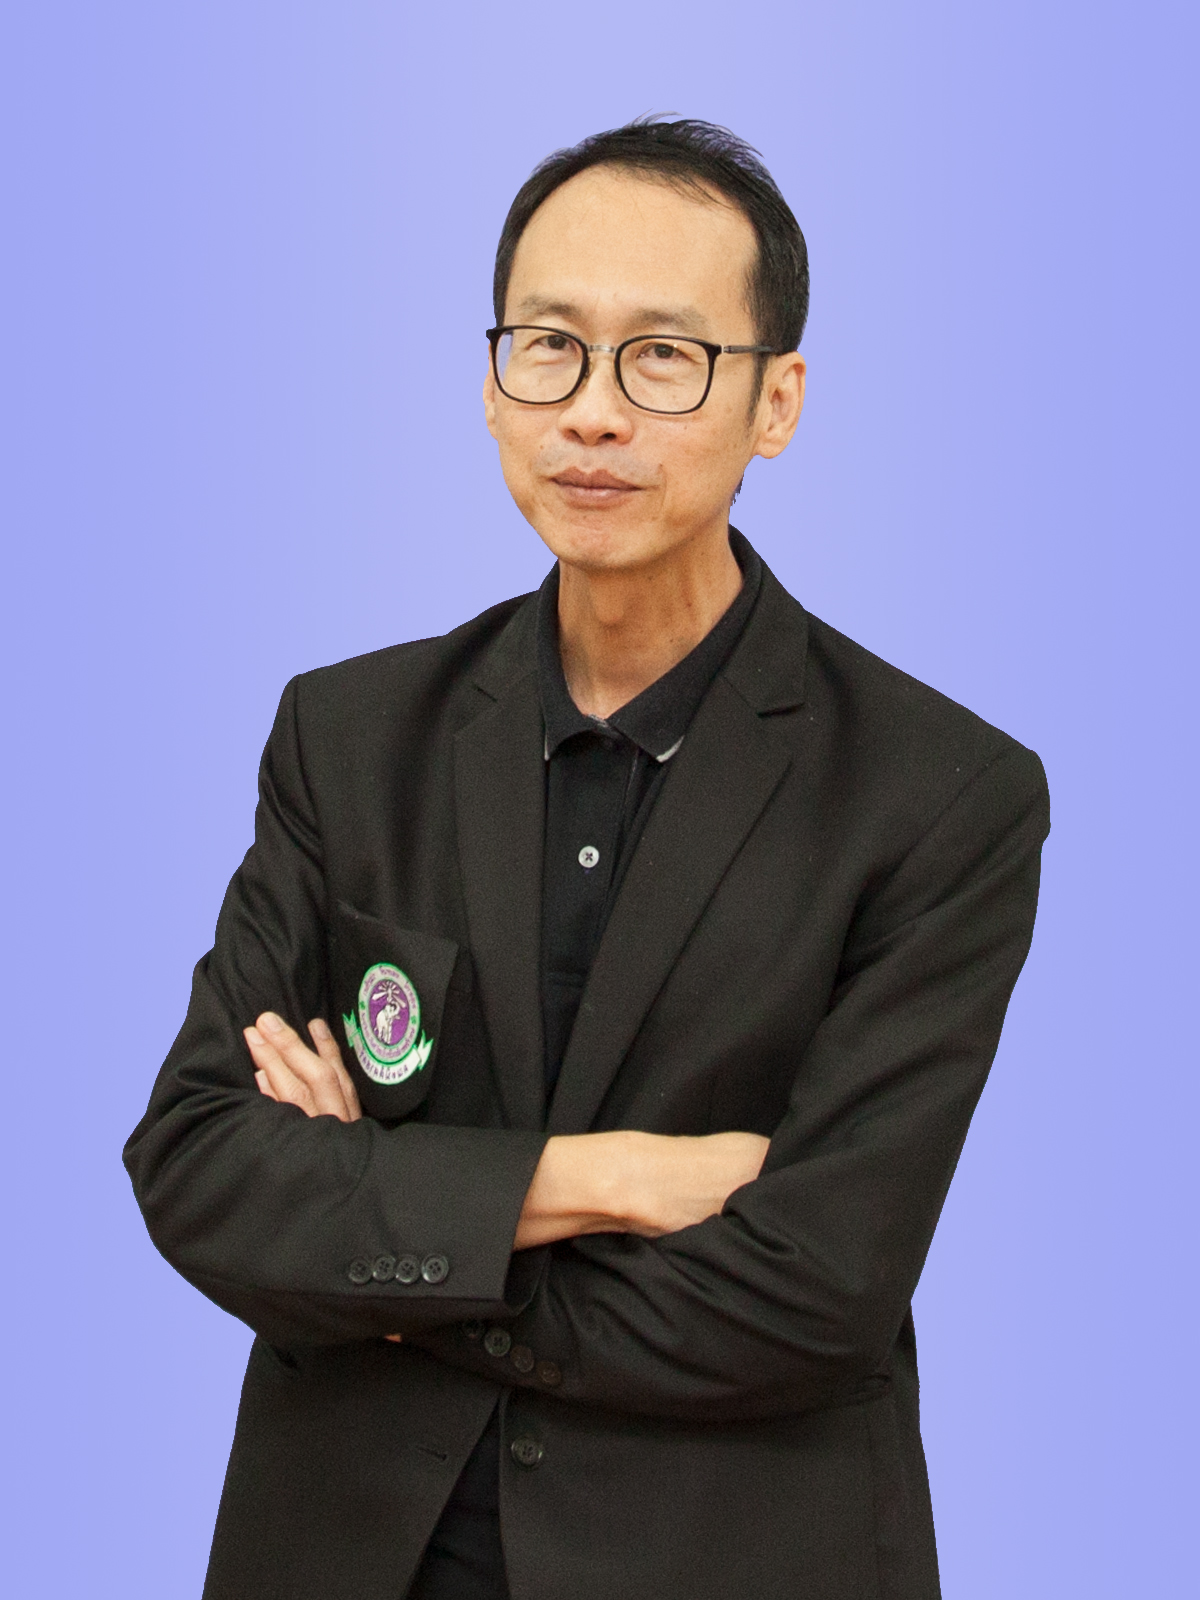 Associate Professor Somchai Preechasinlapakun